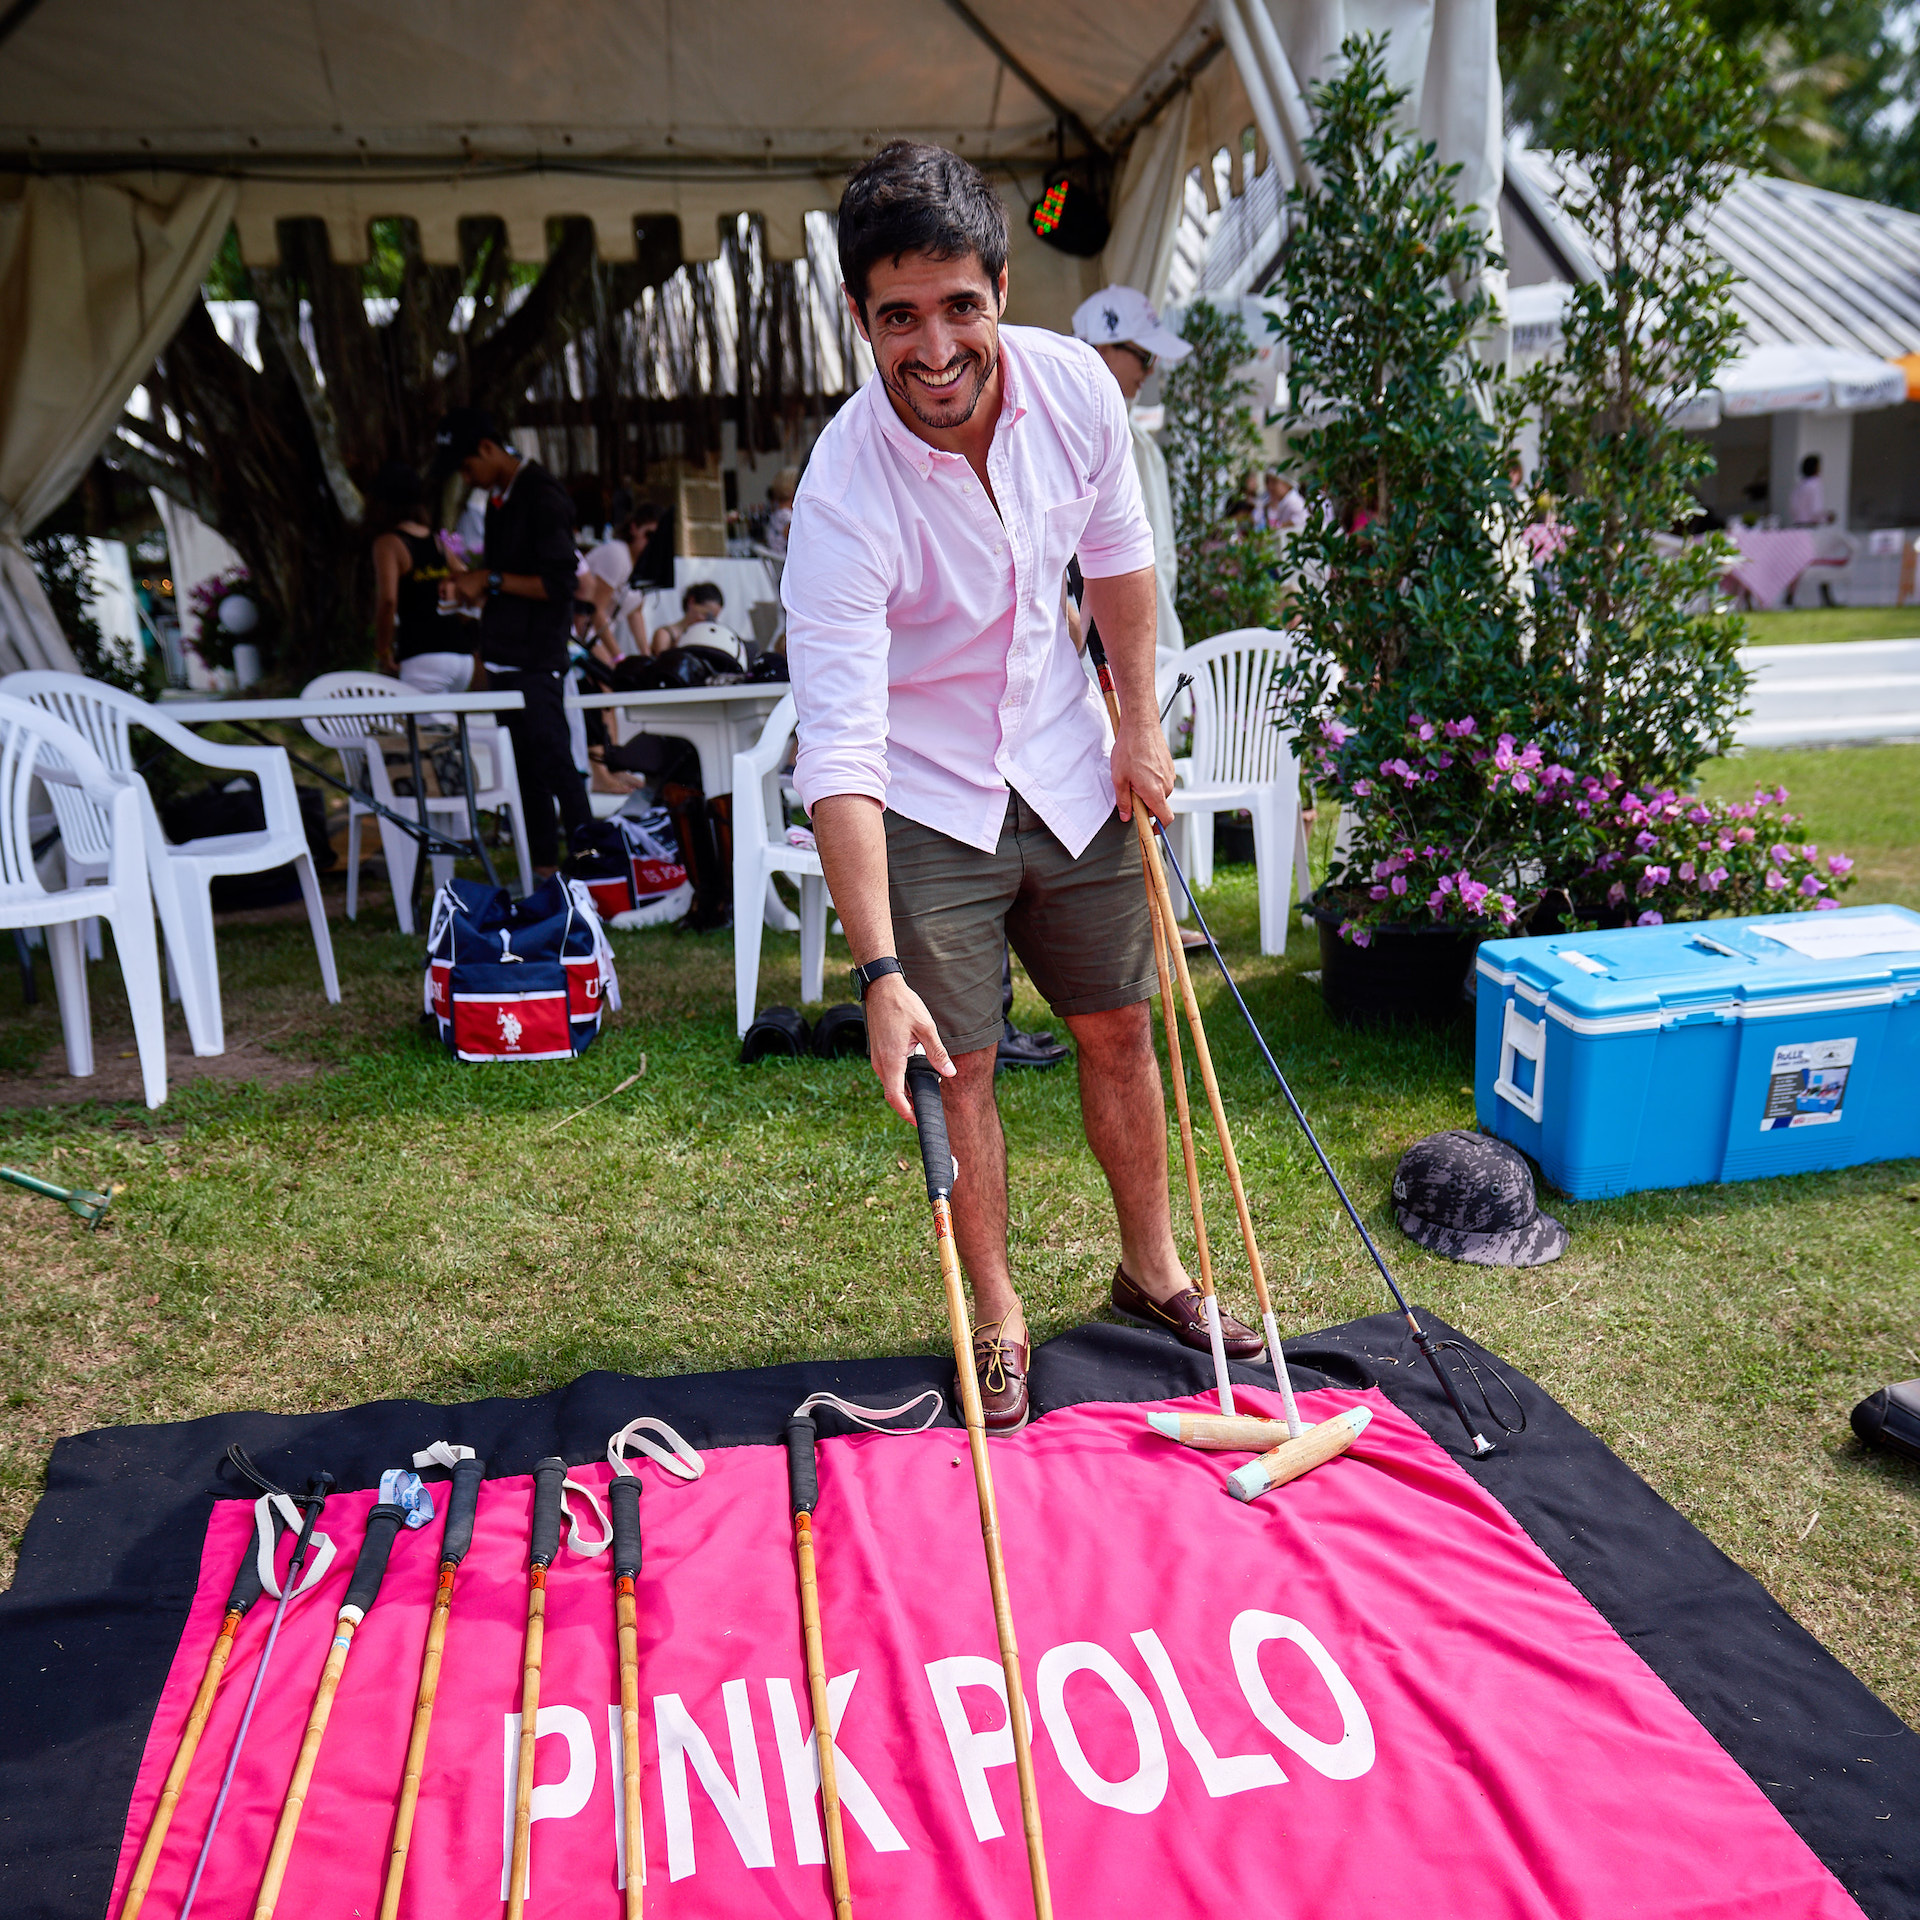 THAI-PINK-POLO-2019-FINALS_DOM1562